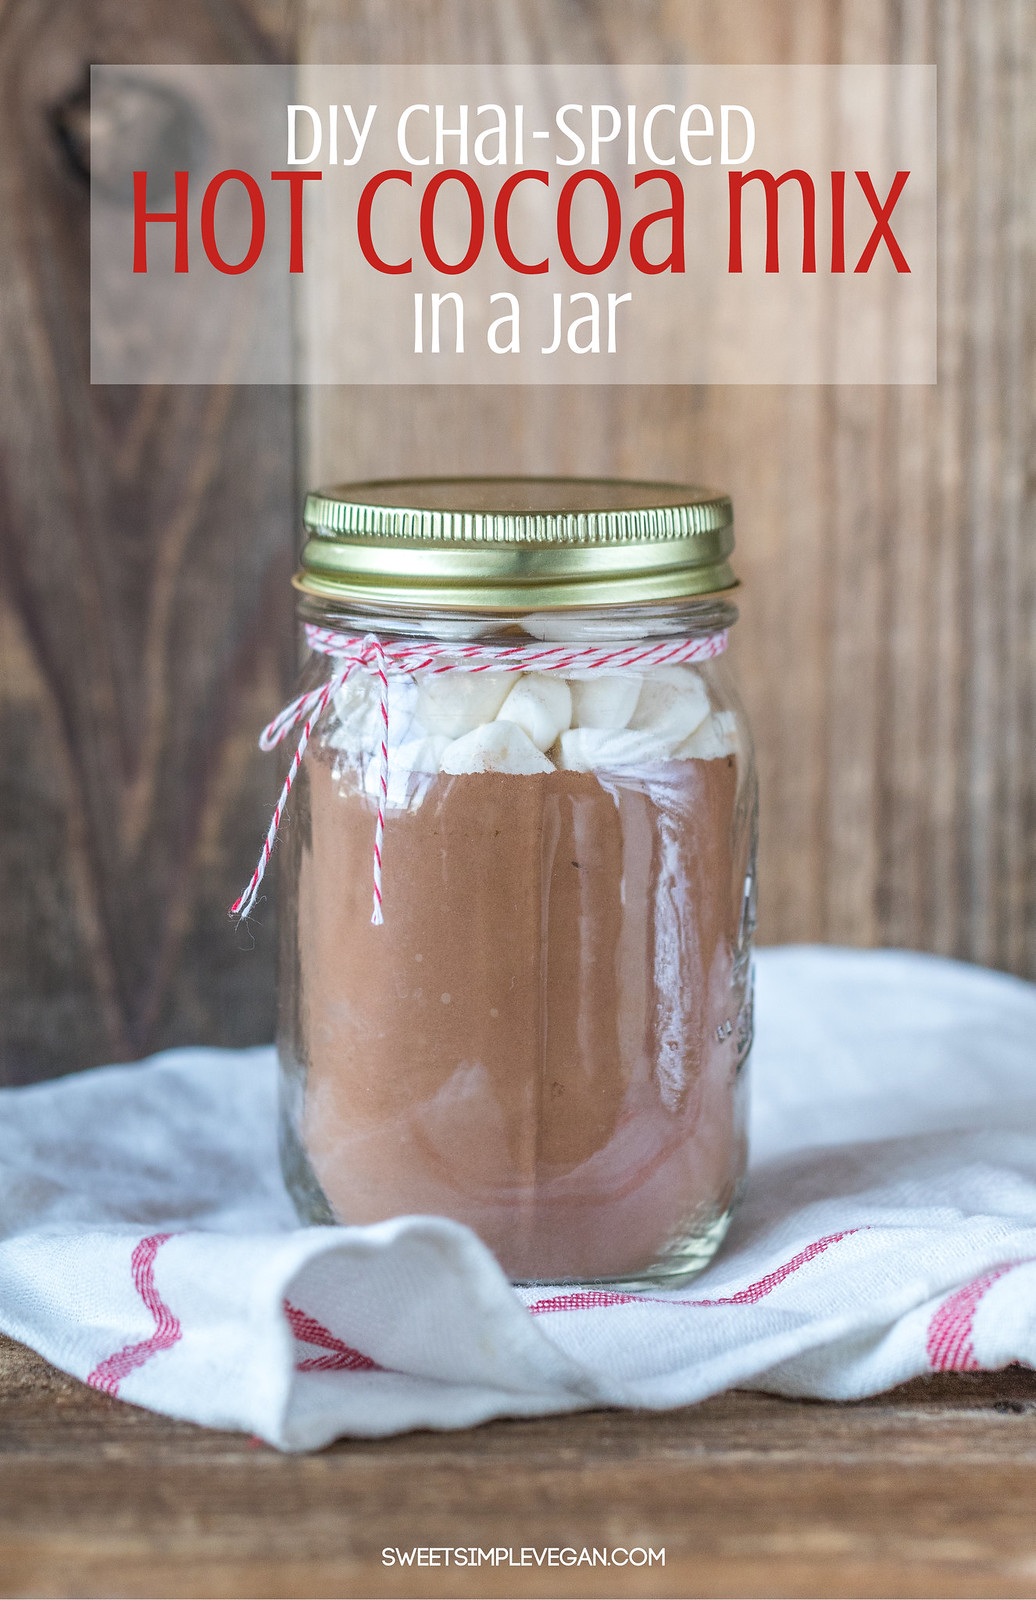 Chai Spiced Hot Cocoa Mix In A Jar - DIY Vegan Holiday Gift sweetsimplevegan.com